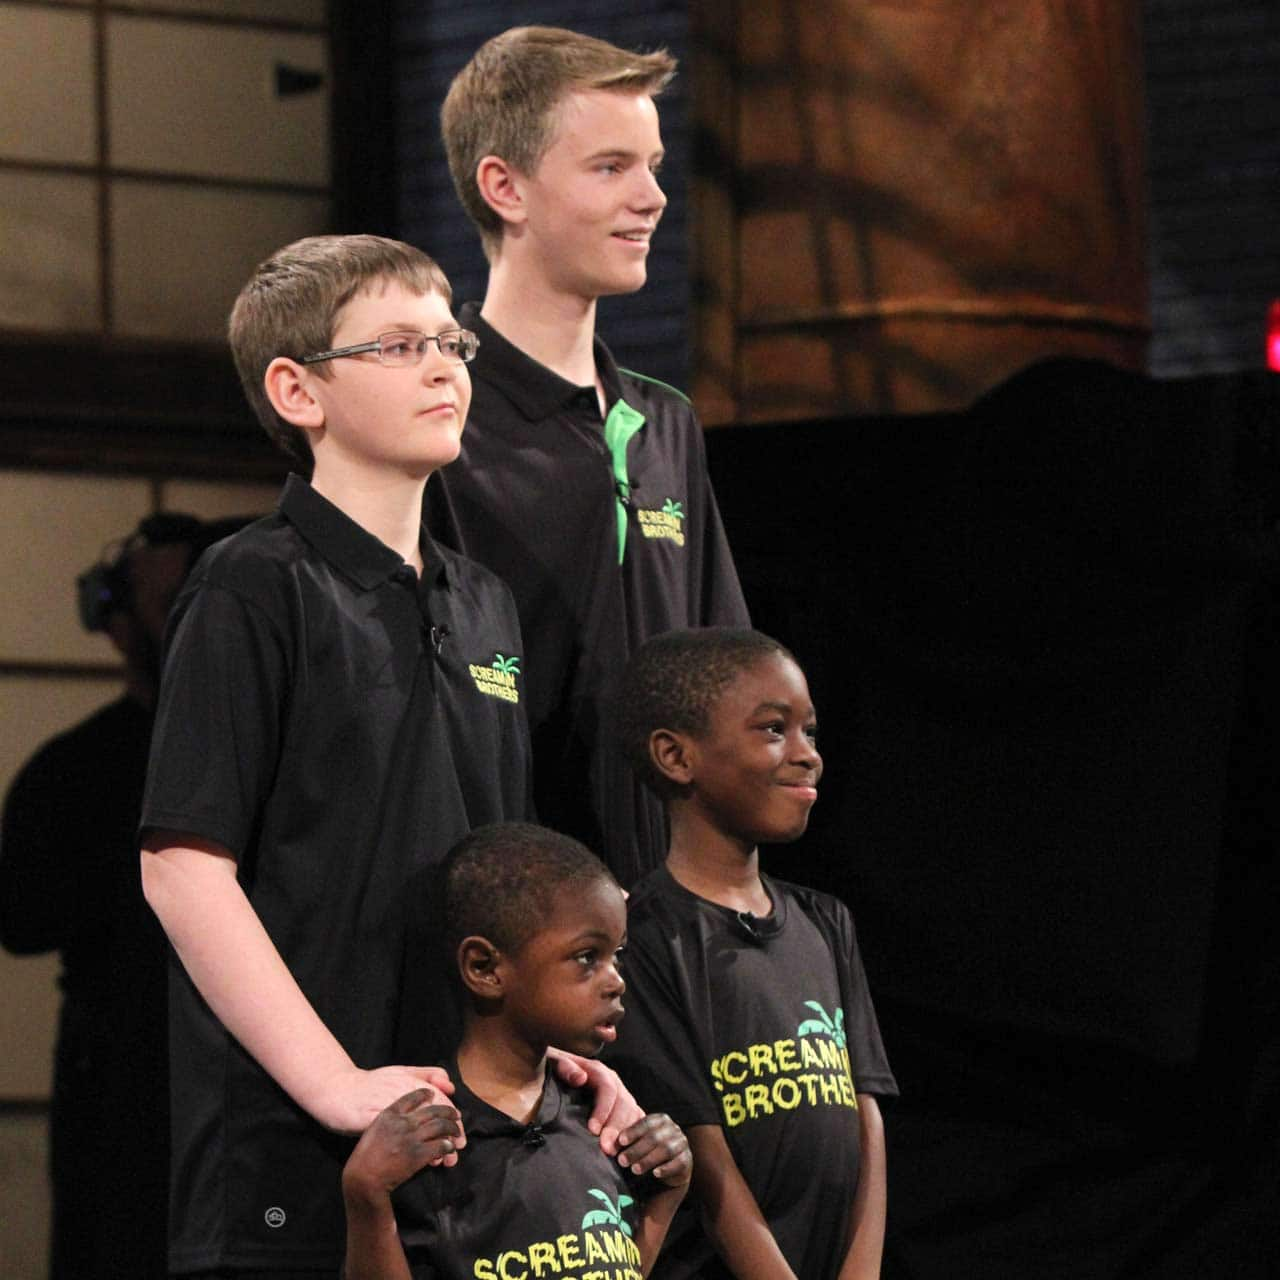 Screamin Brothers pitch on Dragons' Den